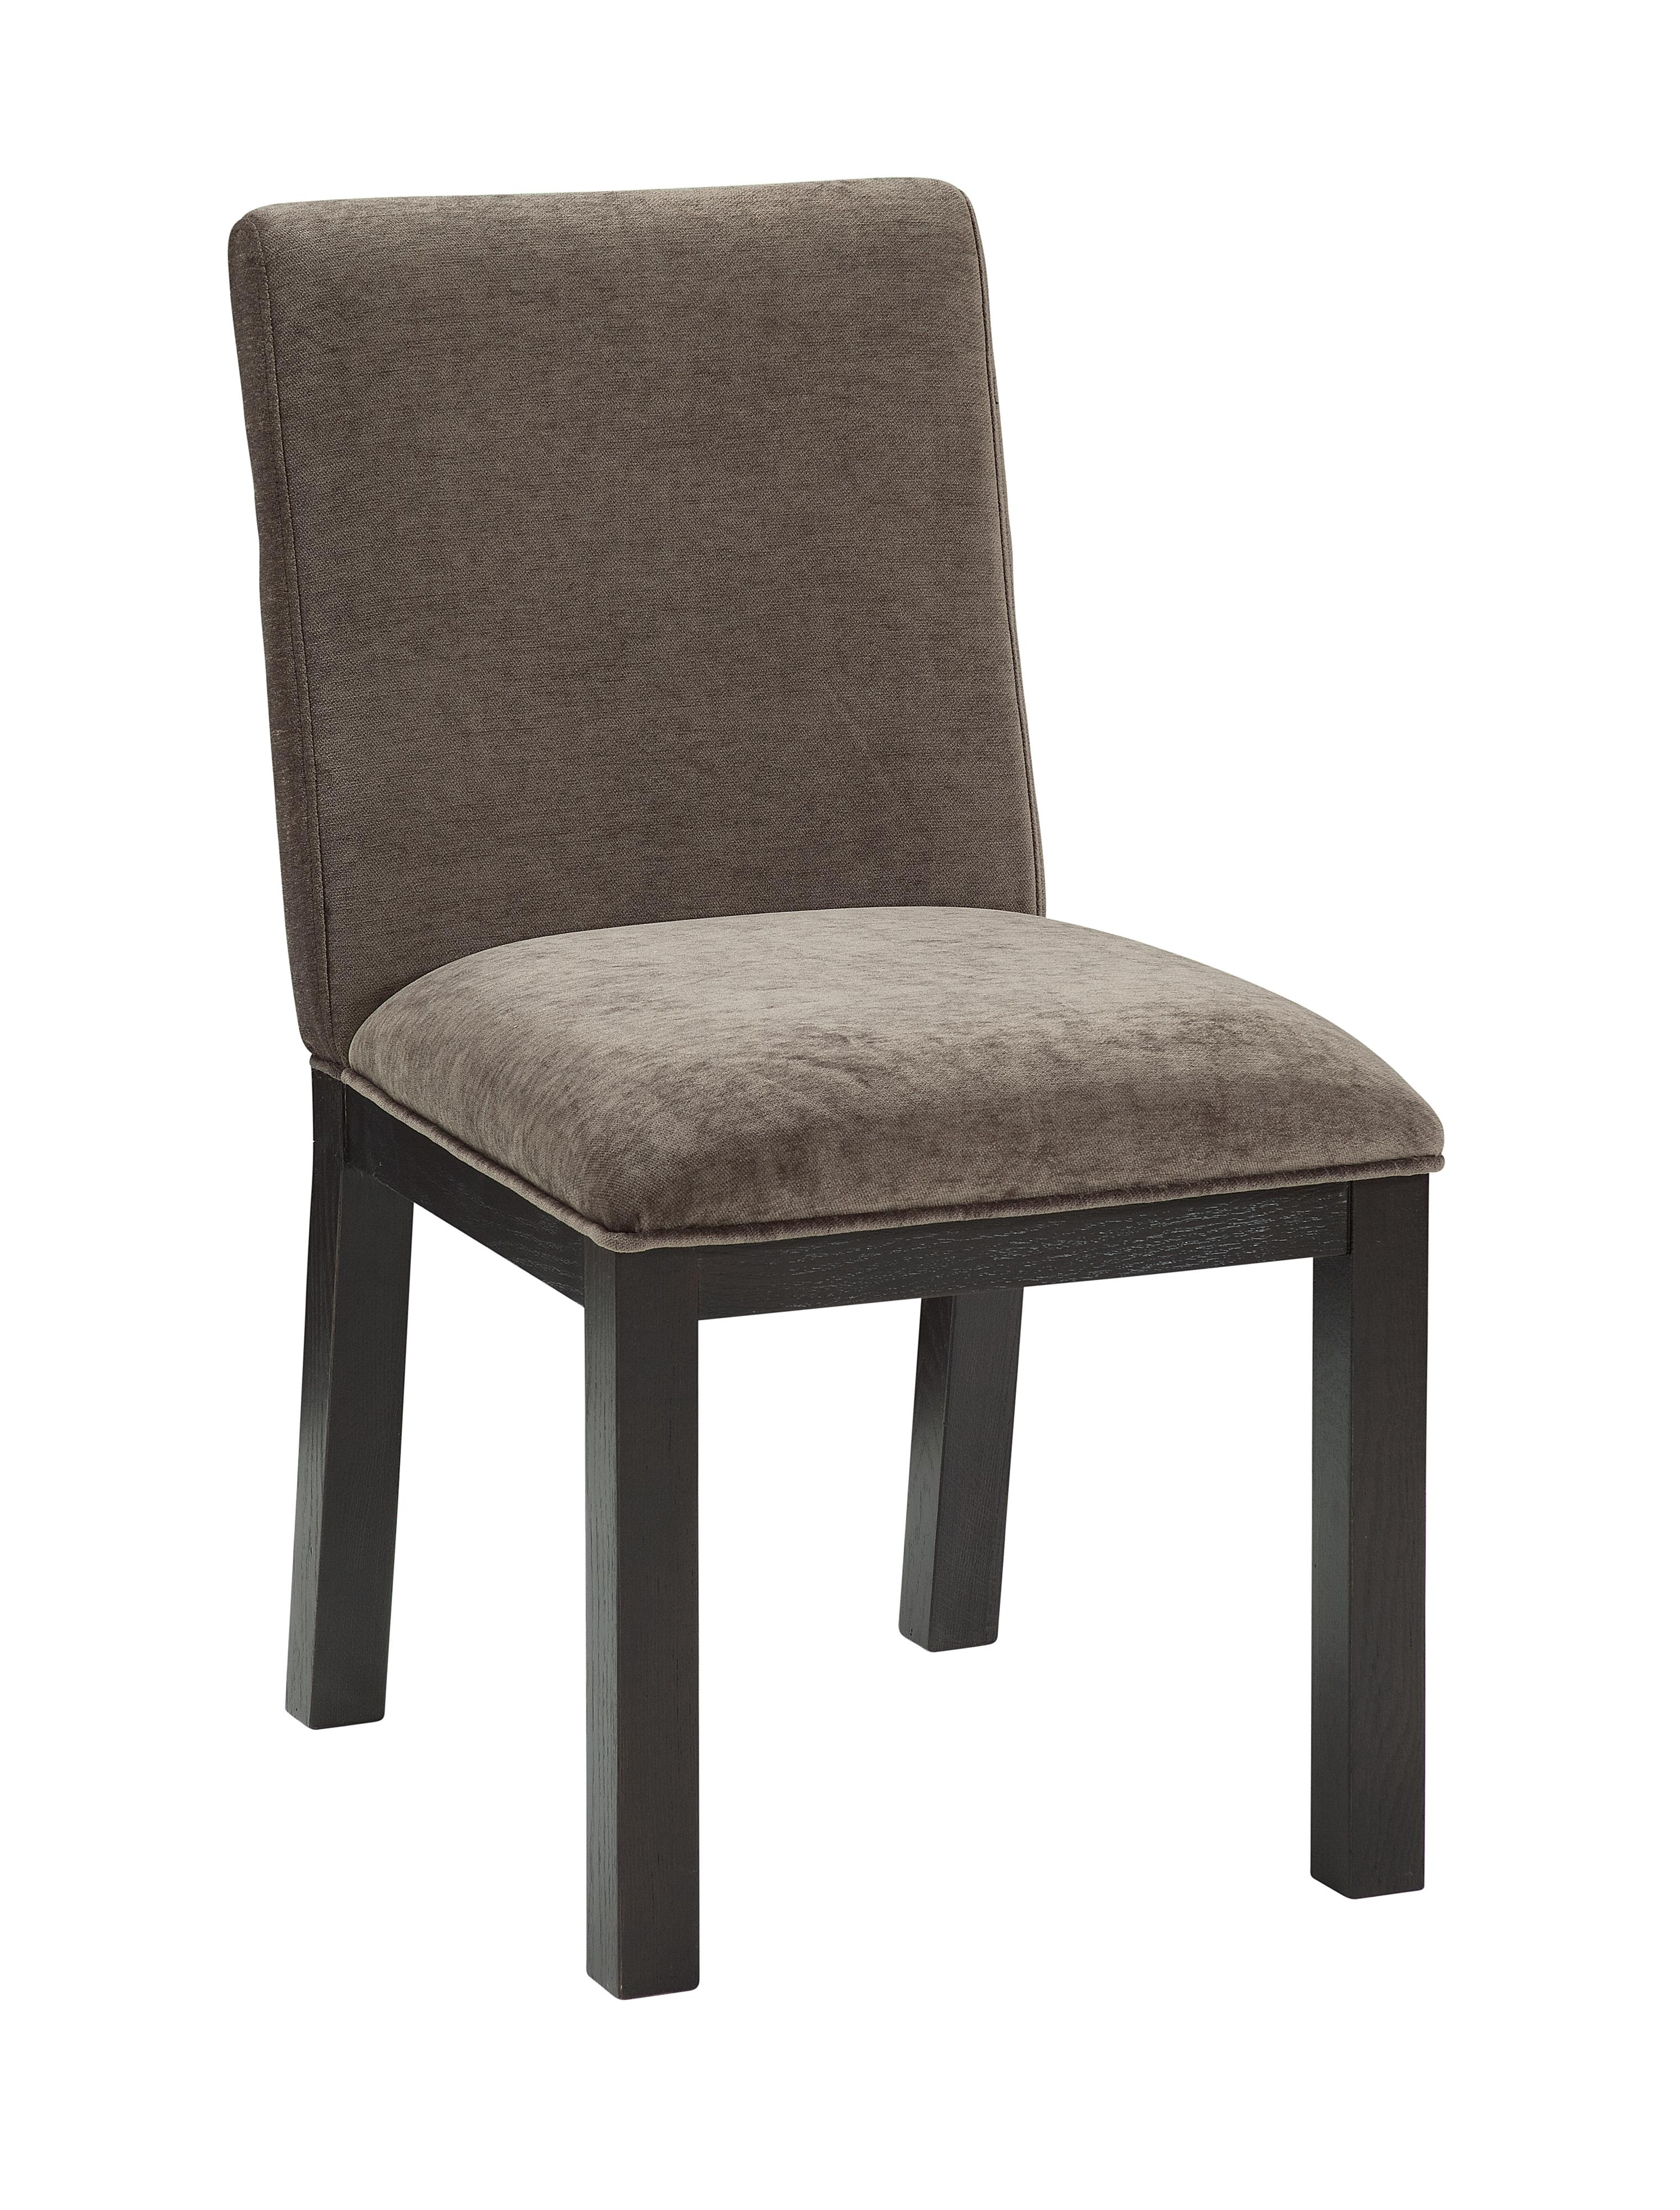 Morris Home Furnishings Metropolis Metropolis Side Chair - Item Number: LACC-8300-300